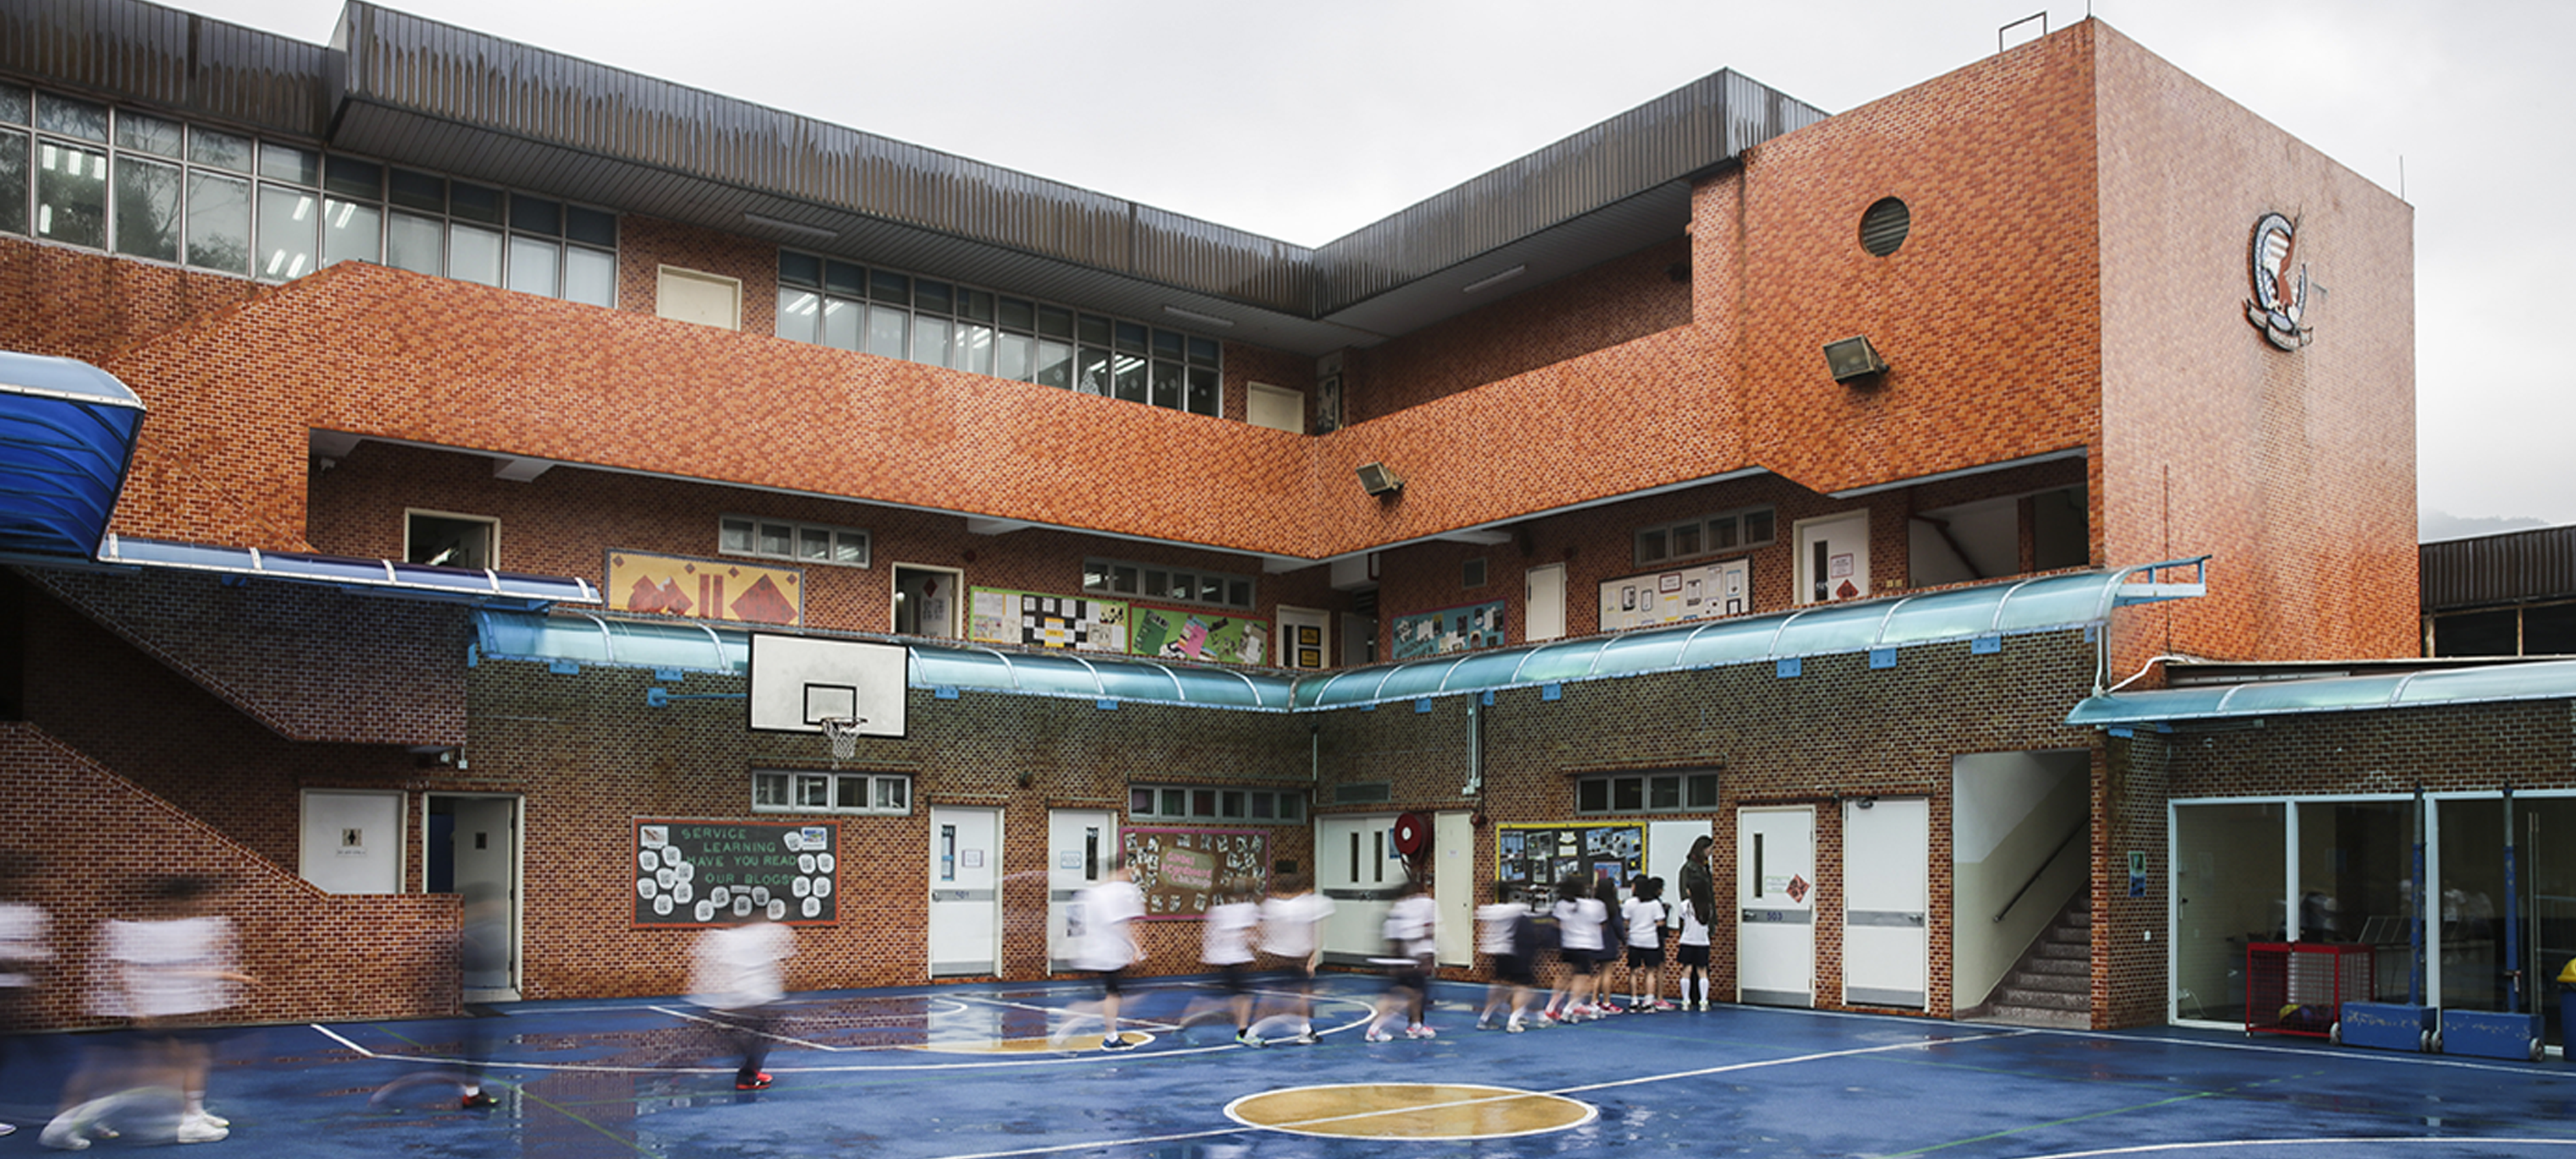 American International School Hong Kong. Photo: AFP Isaac Lawrence.